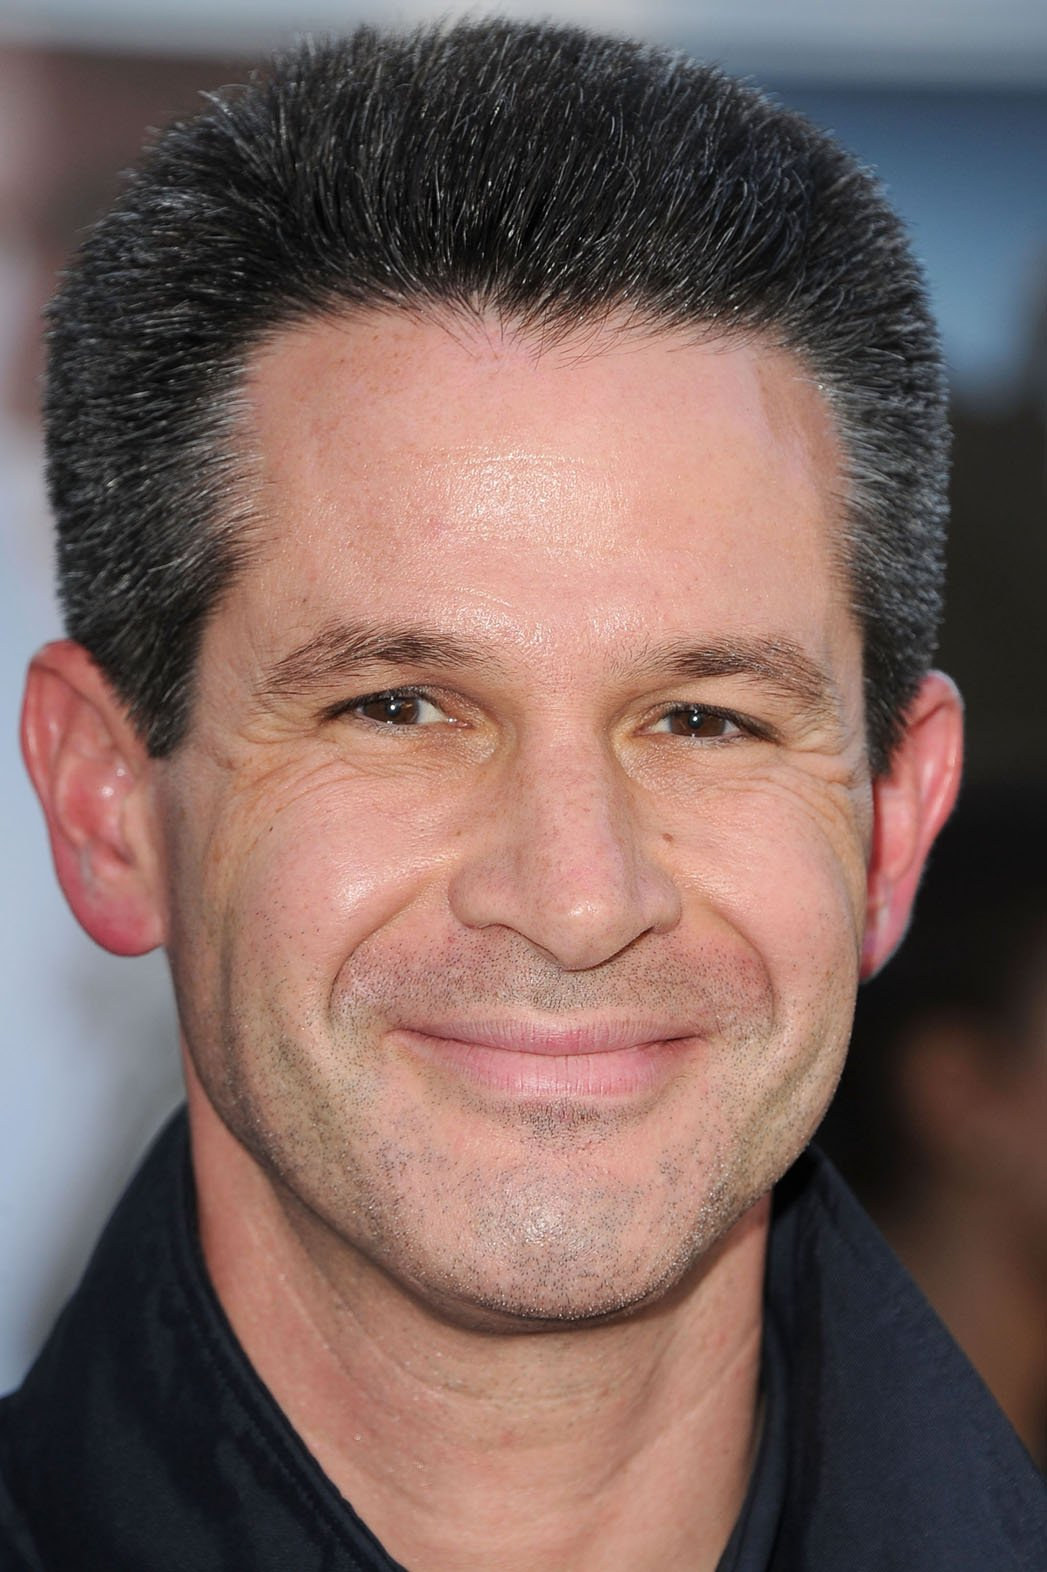 simon kinberg imdbsimon kinberg net worth, simon kinberg x-men, simon kinberg interview, simon kinberg instagram, simon kinberg imdb, simon kinberg twitter, simon kinberg contact, simon kinberg, simon kinberg star wars, simon kinberg deadpool, simon kinberg facebook, simon kinberg wikipedia, simon kinberg wife, simon kinberg josh trank, simon kinberg wiki, simon kinberg the martian, simon kinberg movies, simon kinberg email, simon kinberg girlfriend, simon kinberg married